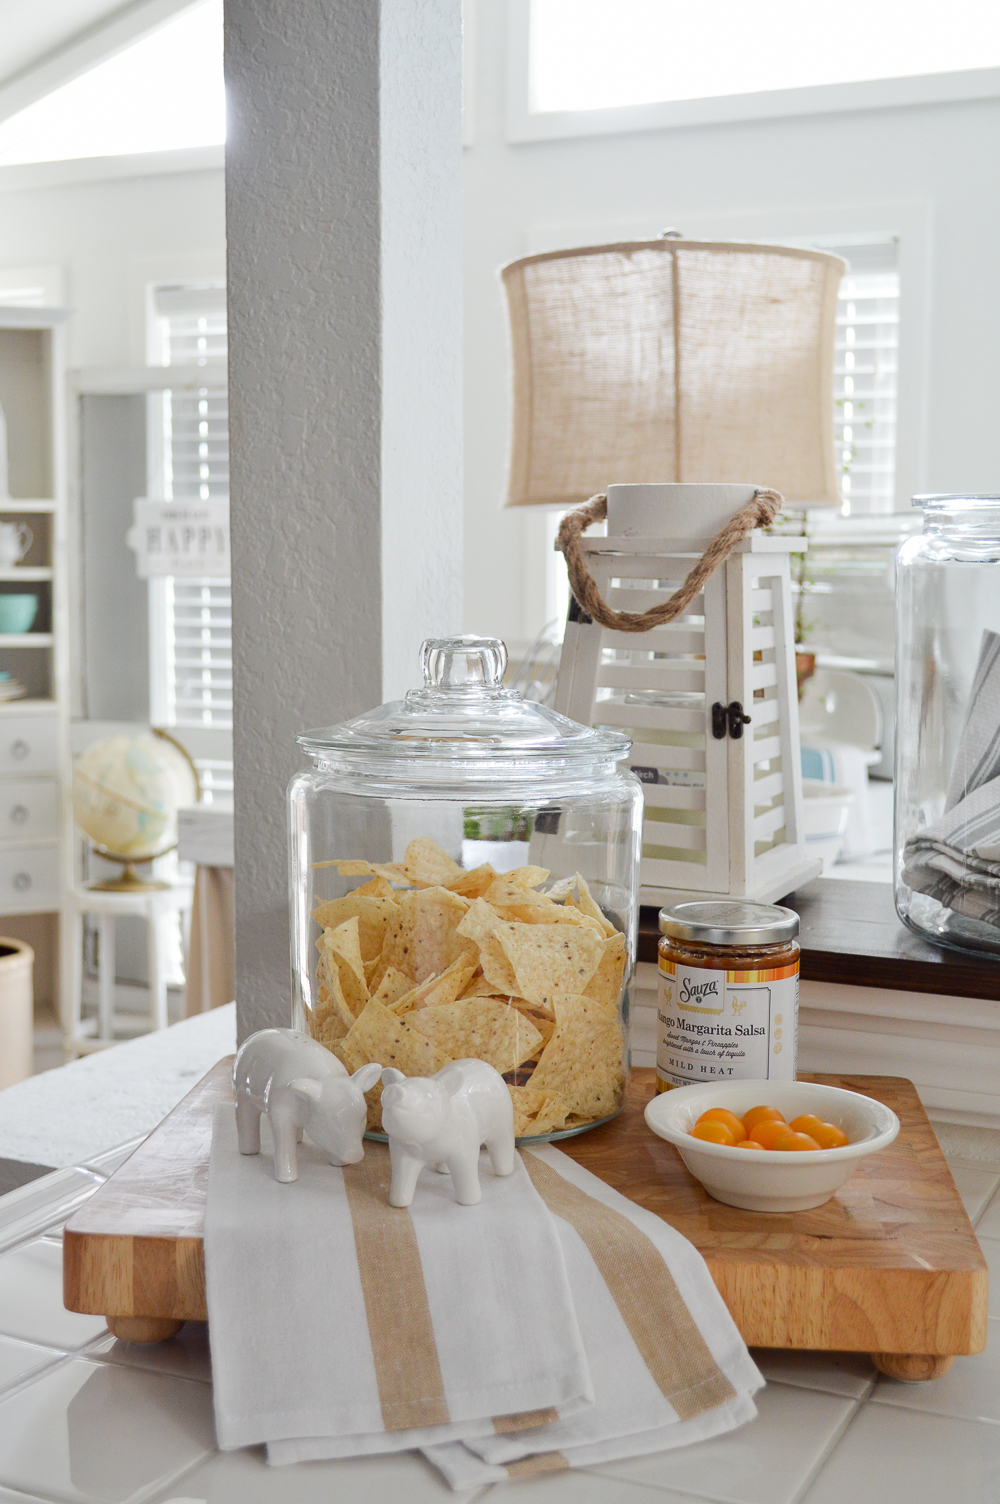 Simple Summer Decorating Ideas and Home Tour - because everyone likes chips and salsa.